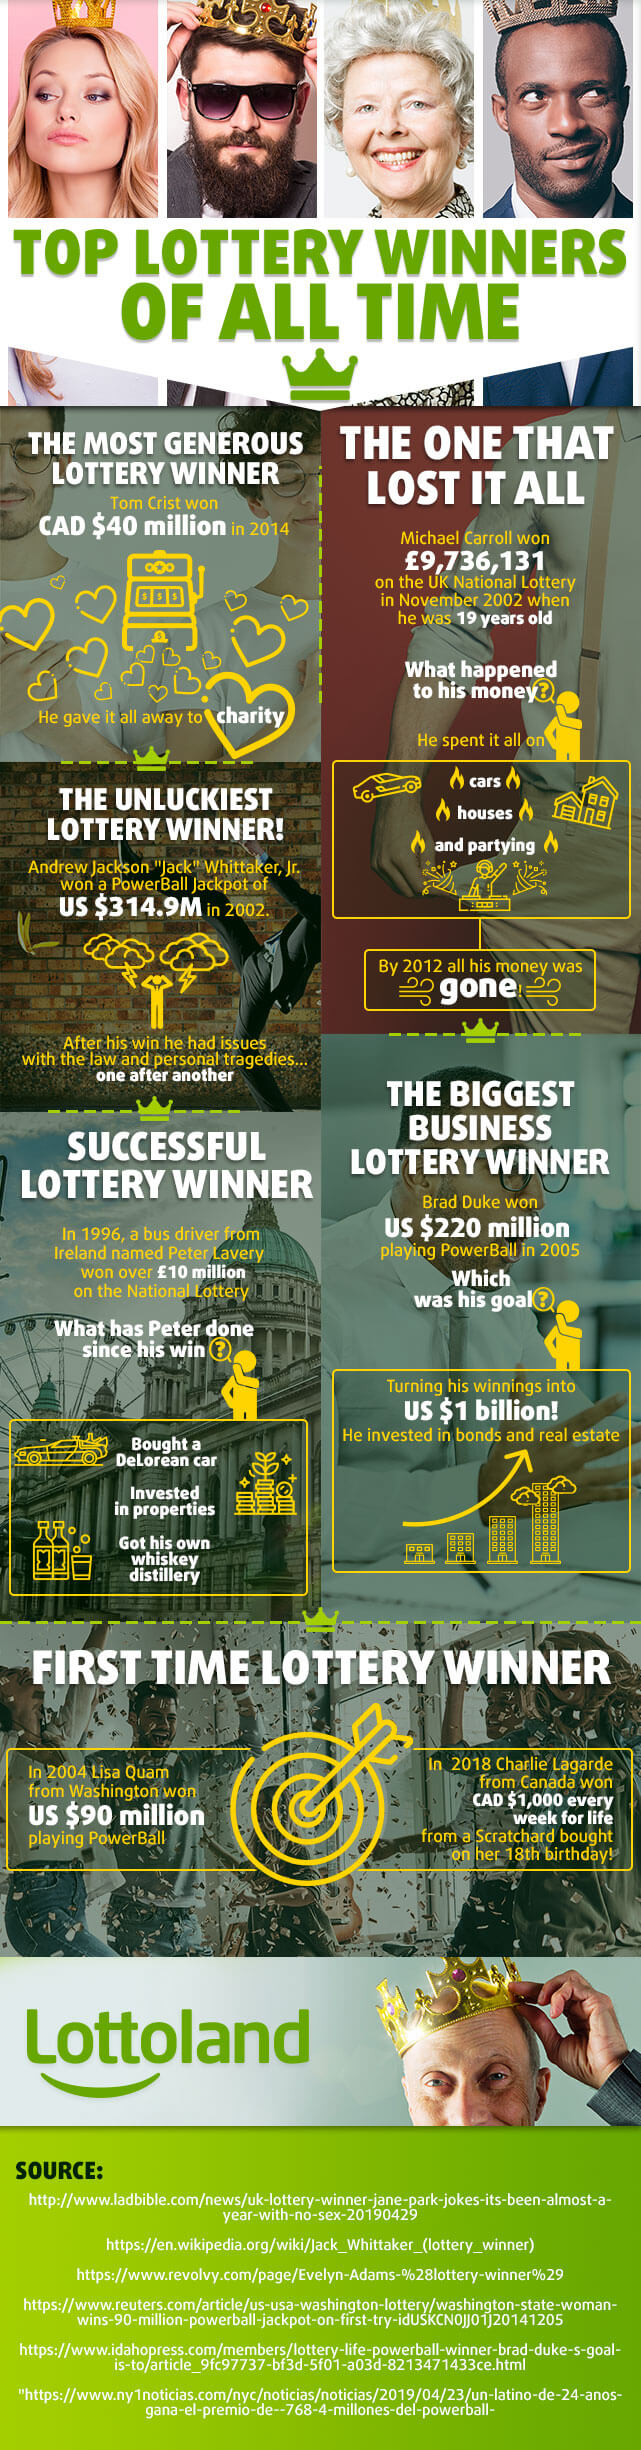 Infographic about top lottery winners